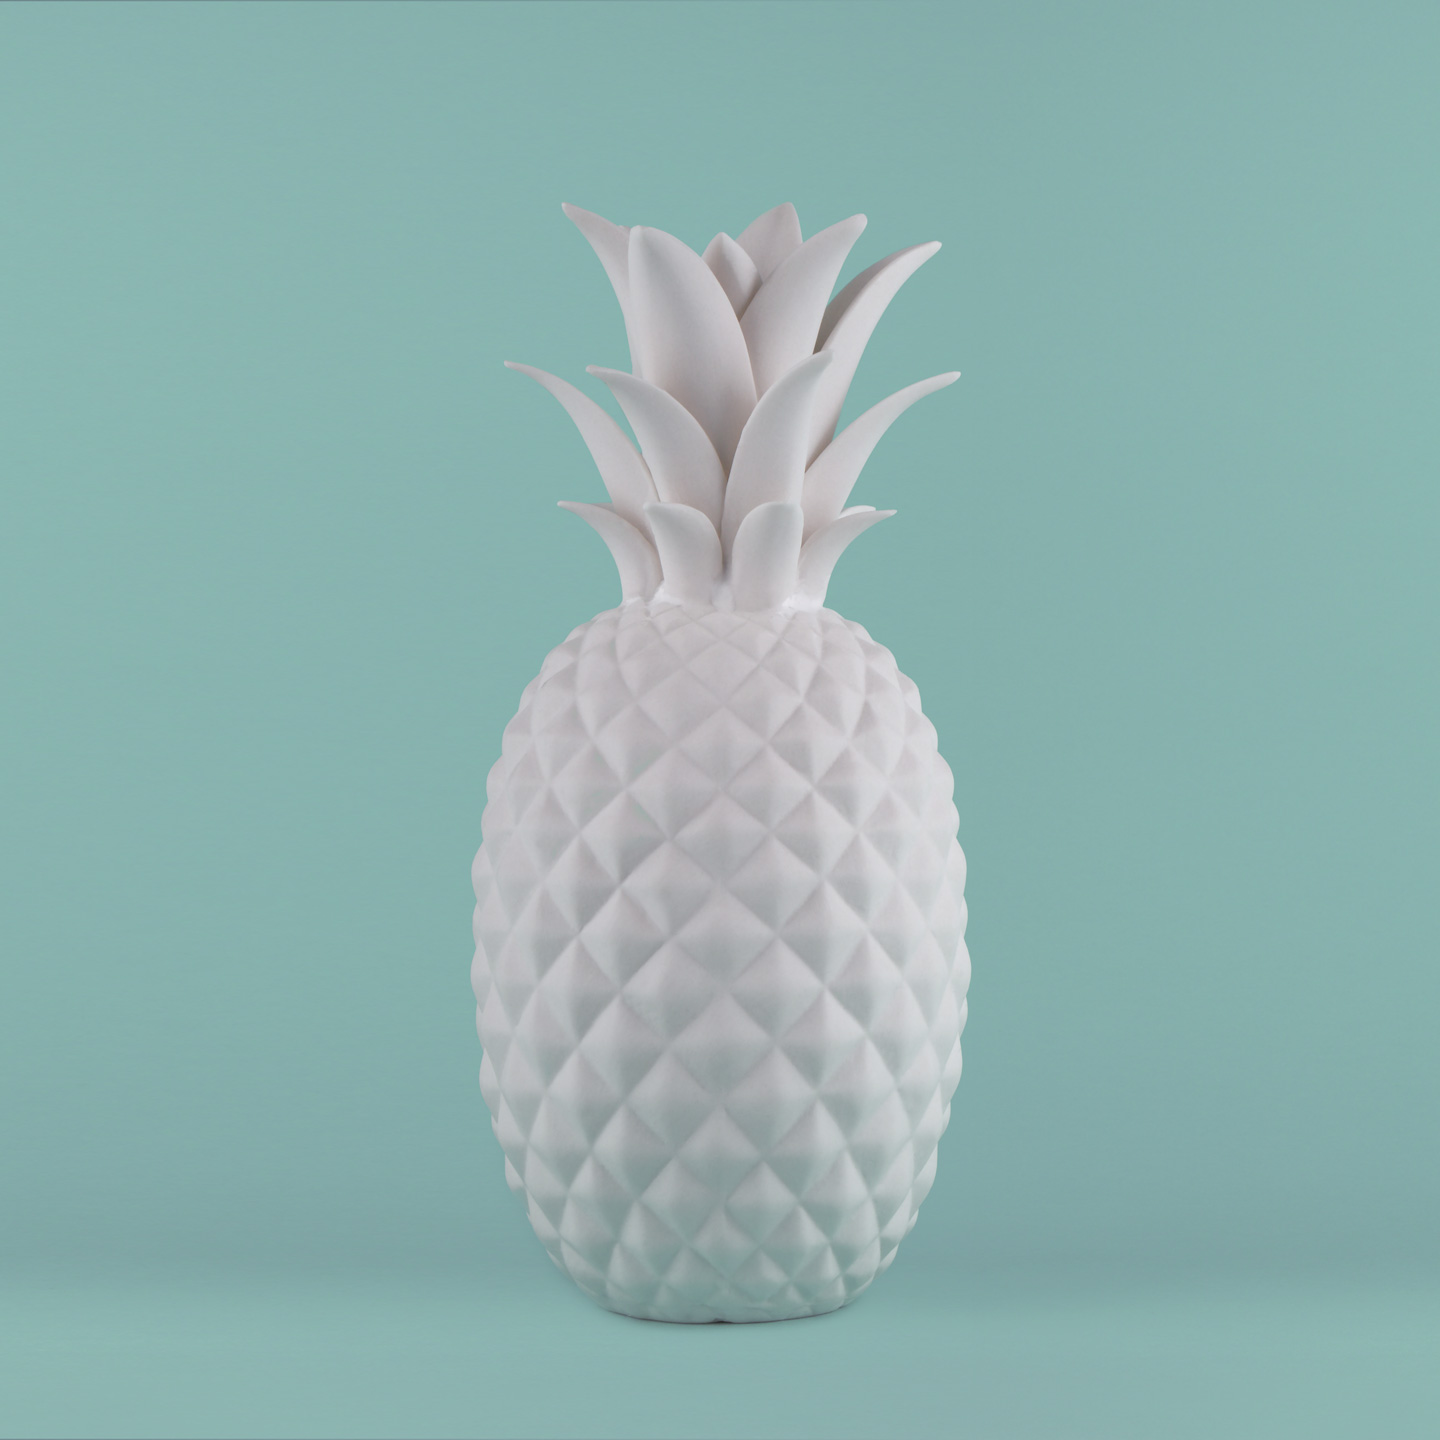 French Photographer Paris Studio Packshot Photography Maison du Monde Porcelain Pineapple